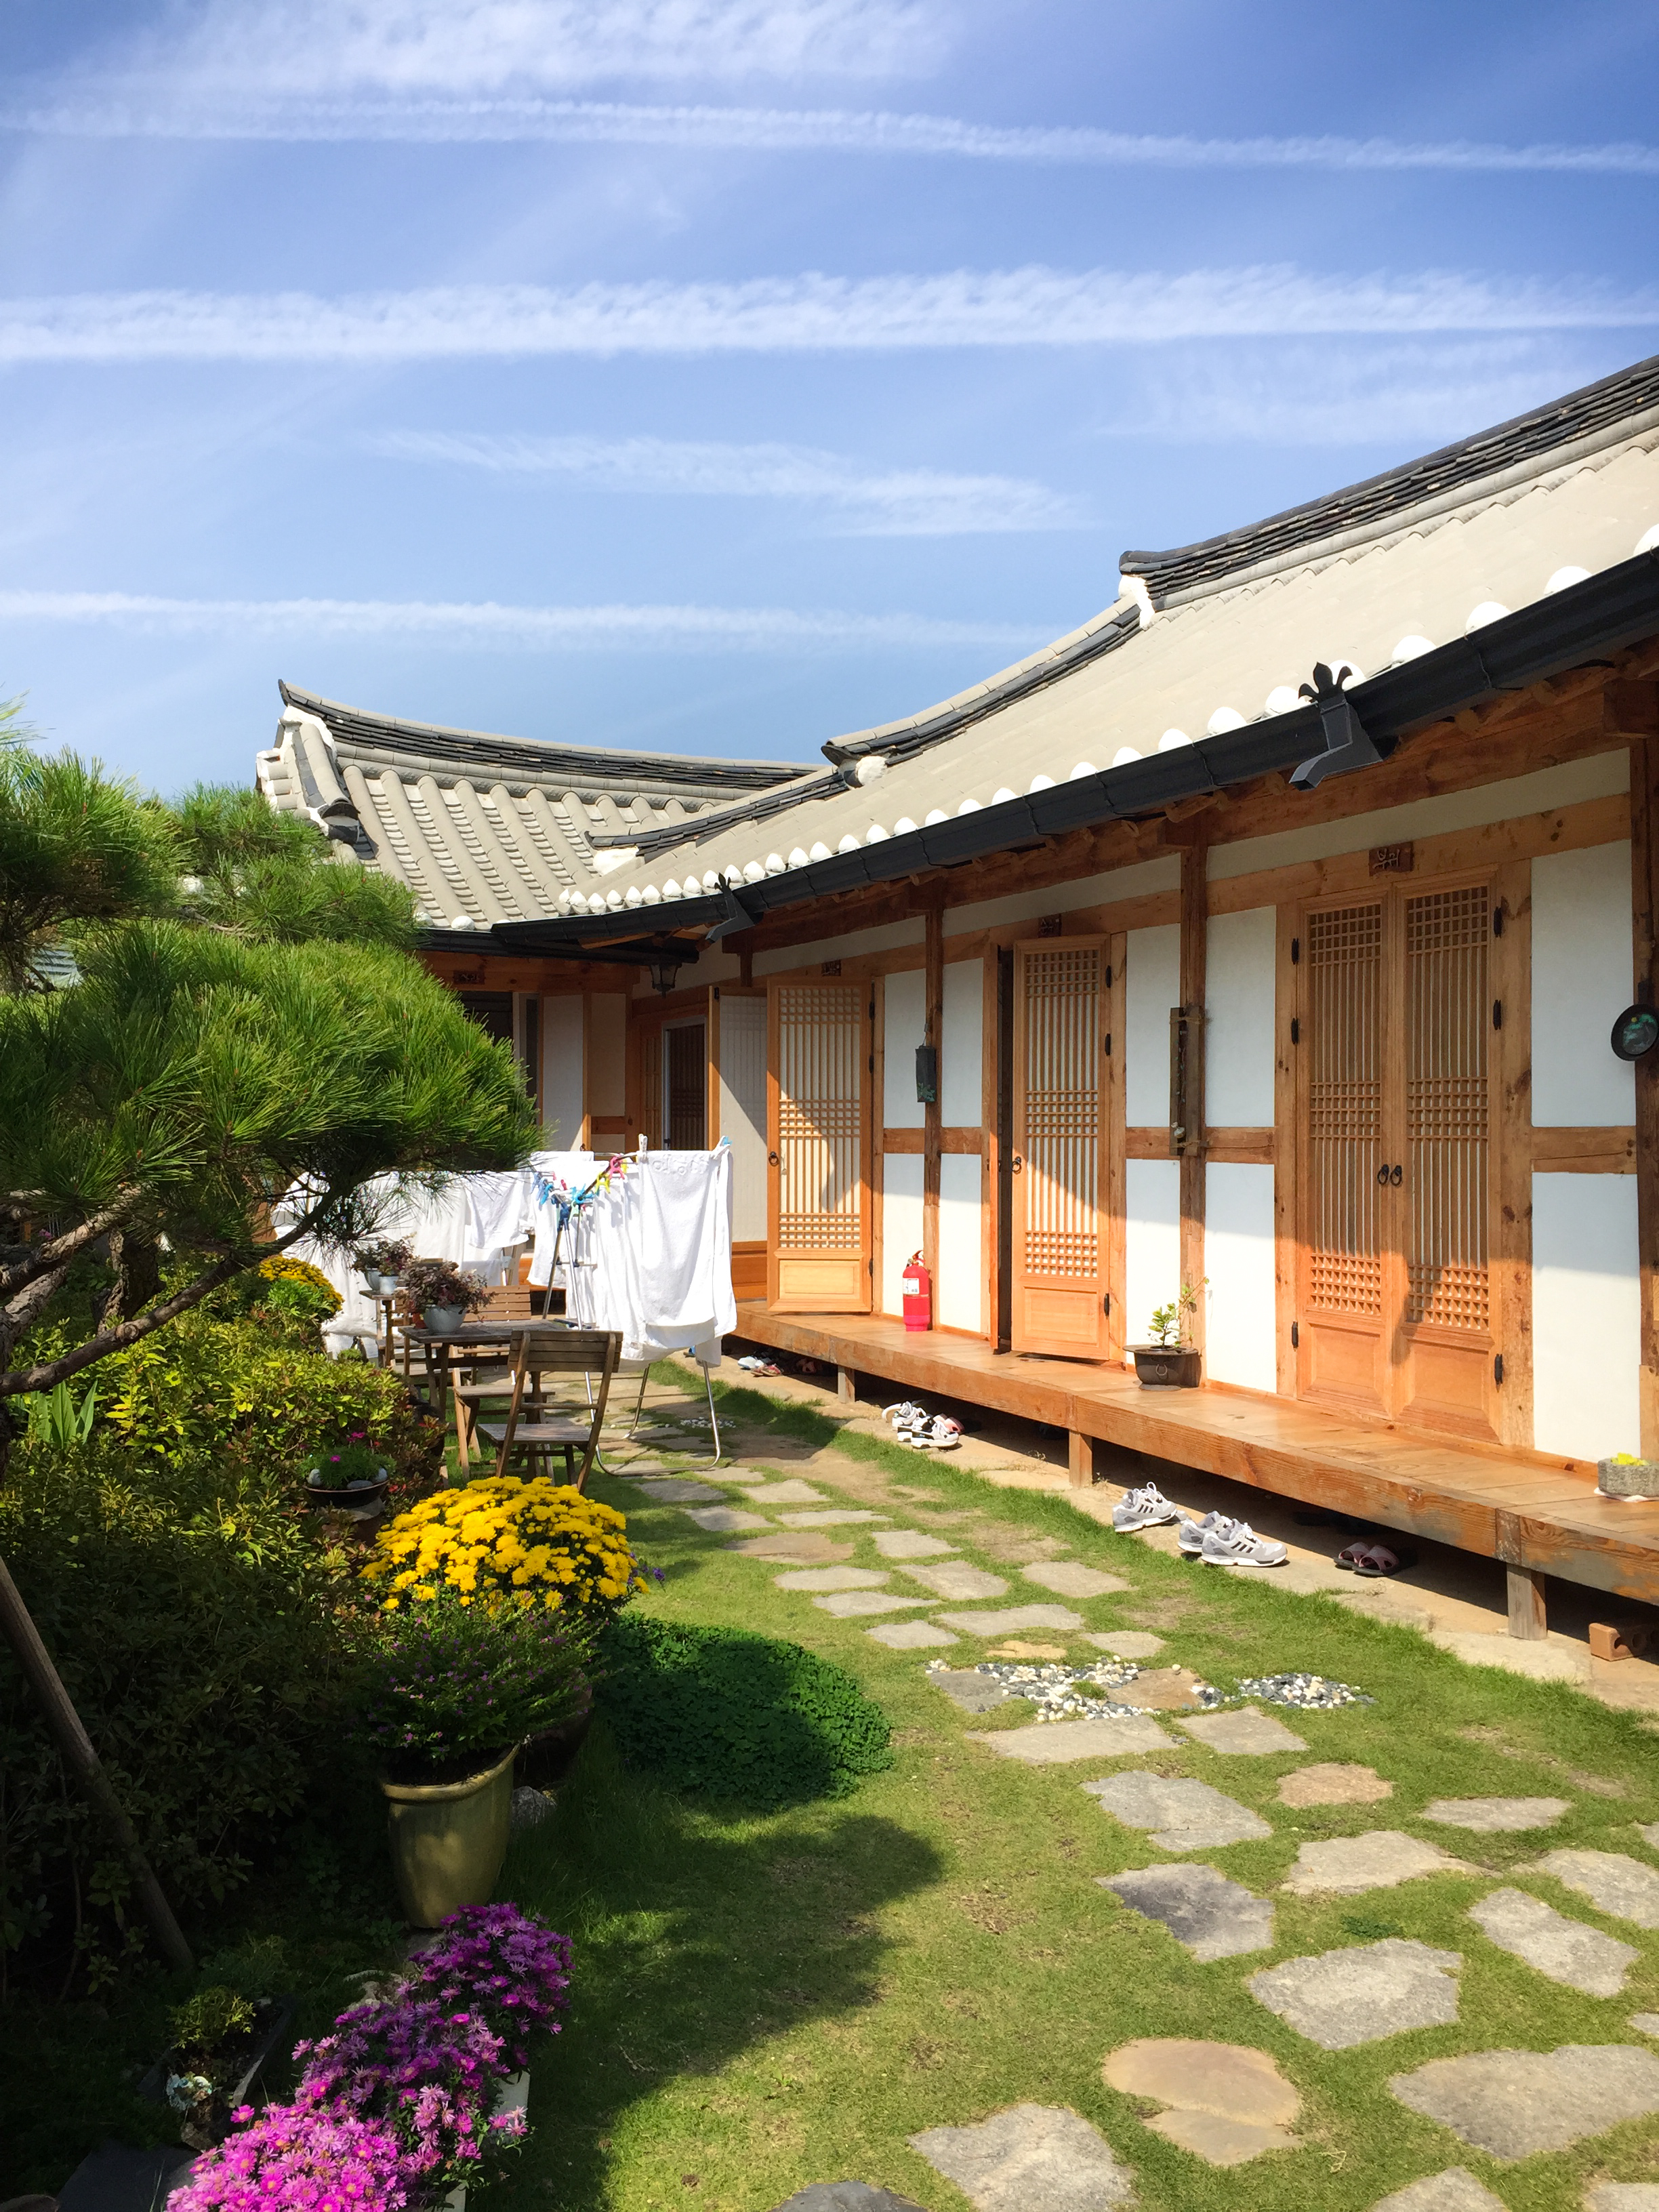 A traditional hotel in Hanok Village (see the shoes left outside?!)